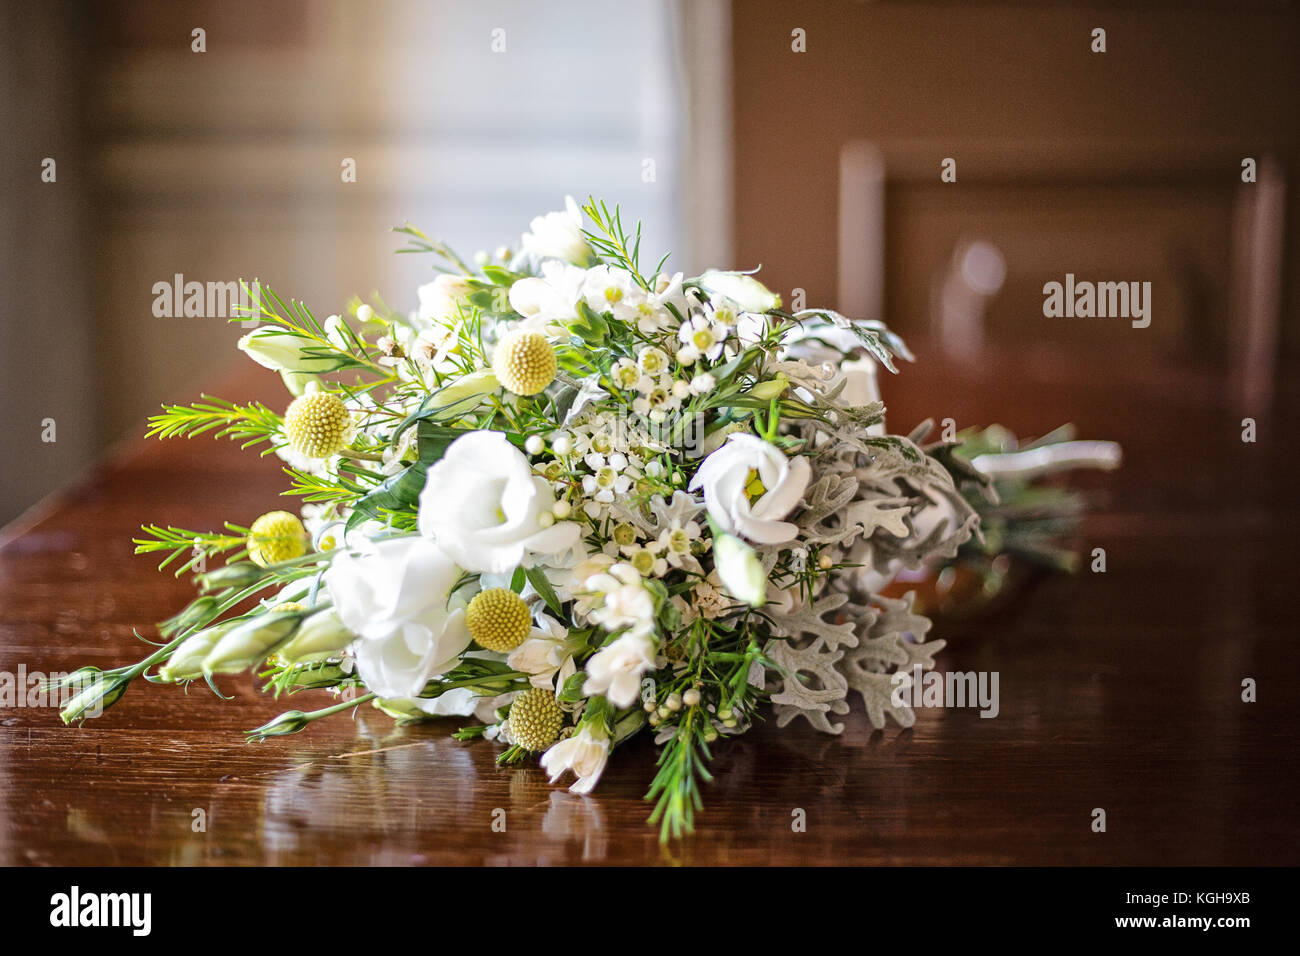 Rustical white and green wedding bouquet placed on a wooden table, indoors, next to the window, natural light - Stock Image